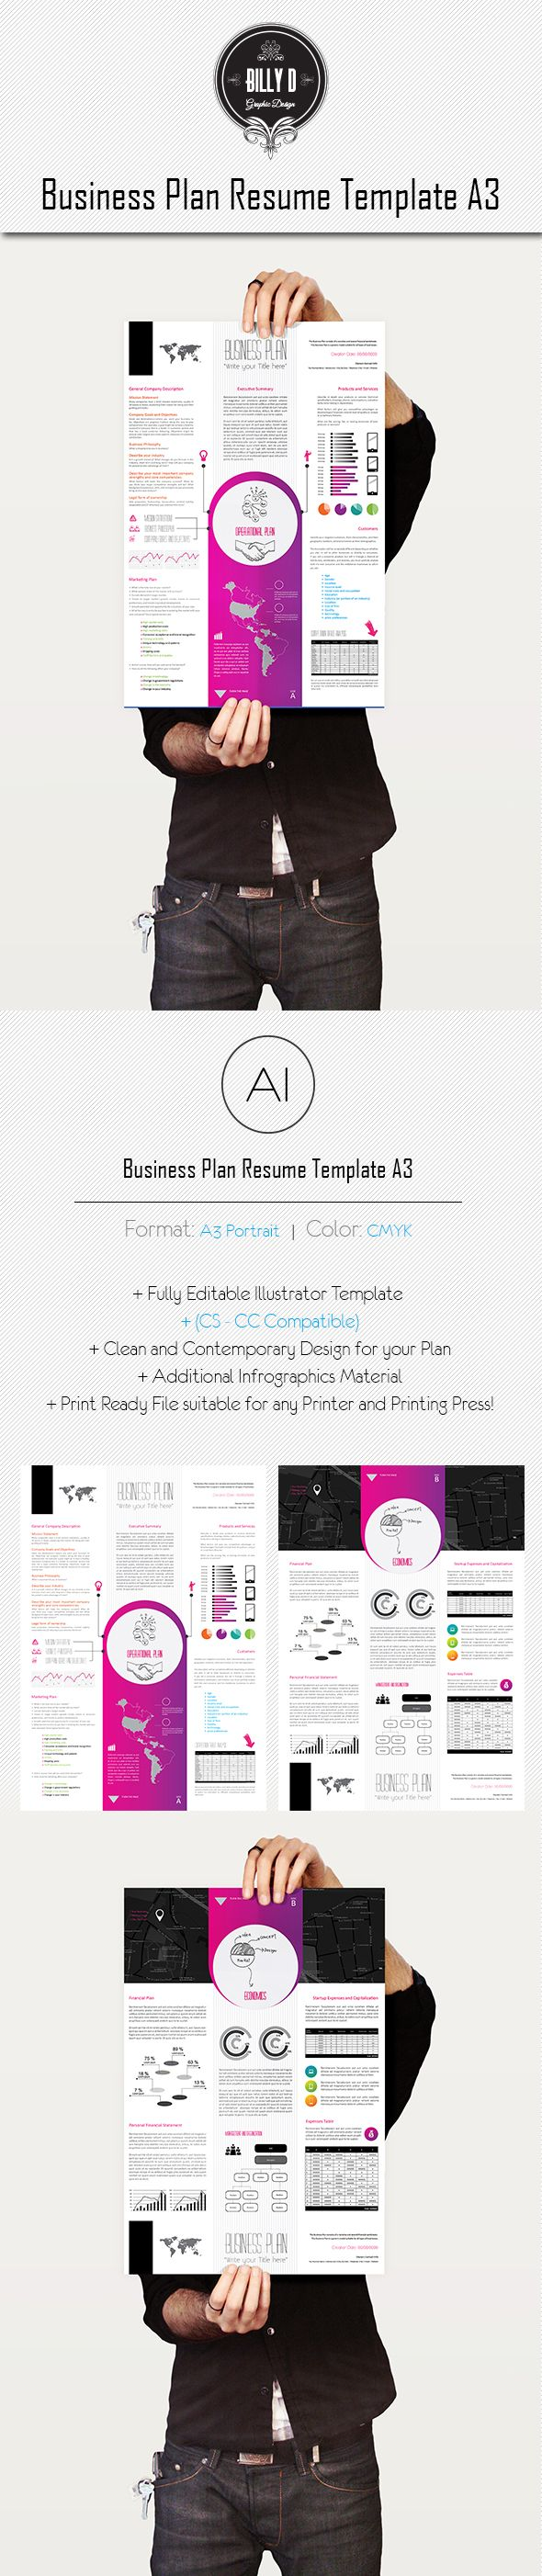 Resume Resume Template For Business Plan best 10 business plan format ideas on pinterest template for resume behance